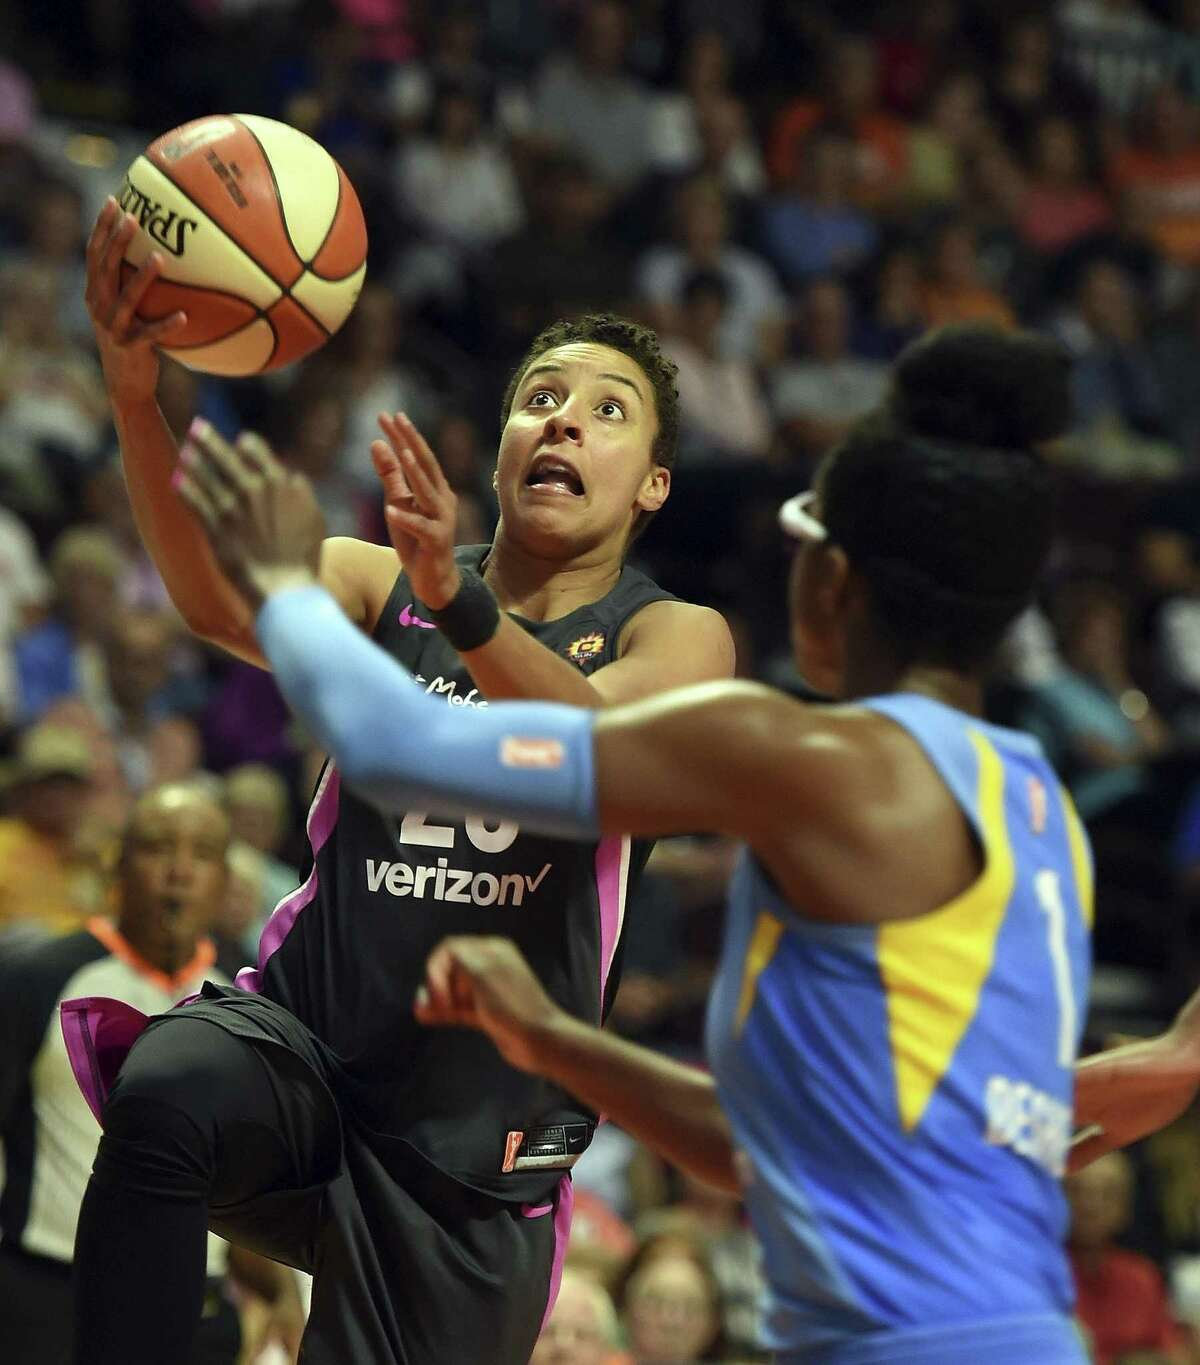 Connecticut Sun guard Layshia Clarendon, left, drives to the basket as Chicago Sky guard Diamon DeShields defends in the second half on Aug. 12.